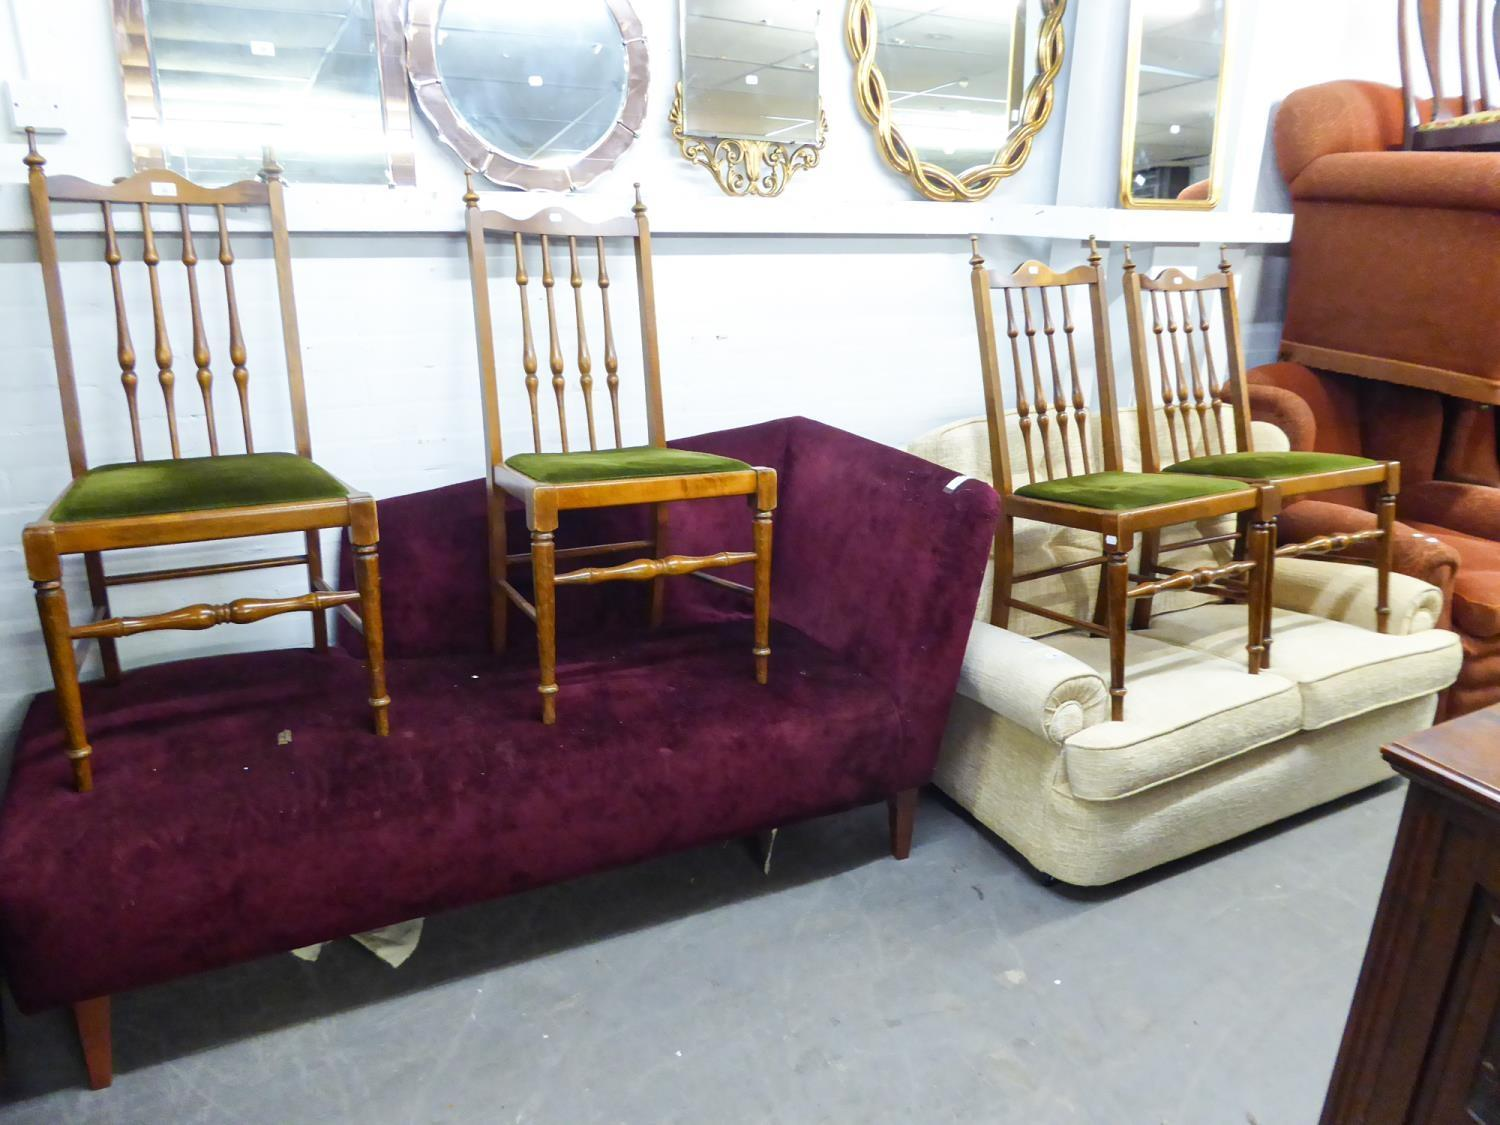 SET OF FOUR HARDWOOD SINGLE CHAIRS EACH WITH TALL SPINDLE BACKS AND DROP-IN SEATS IN GREEN PLUSH